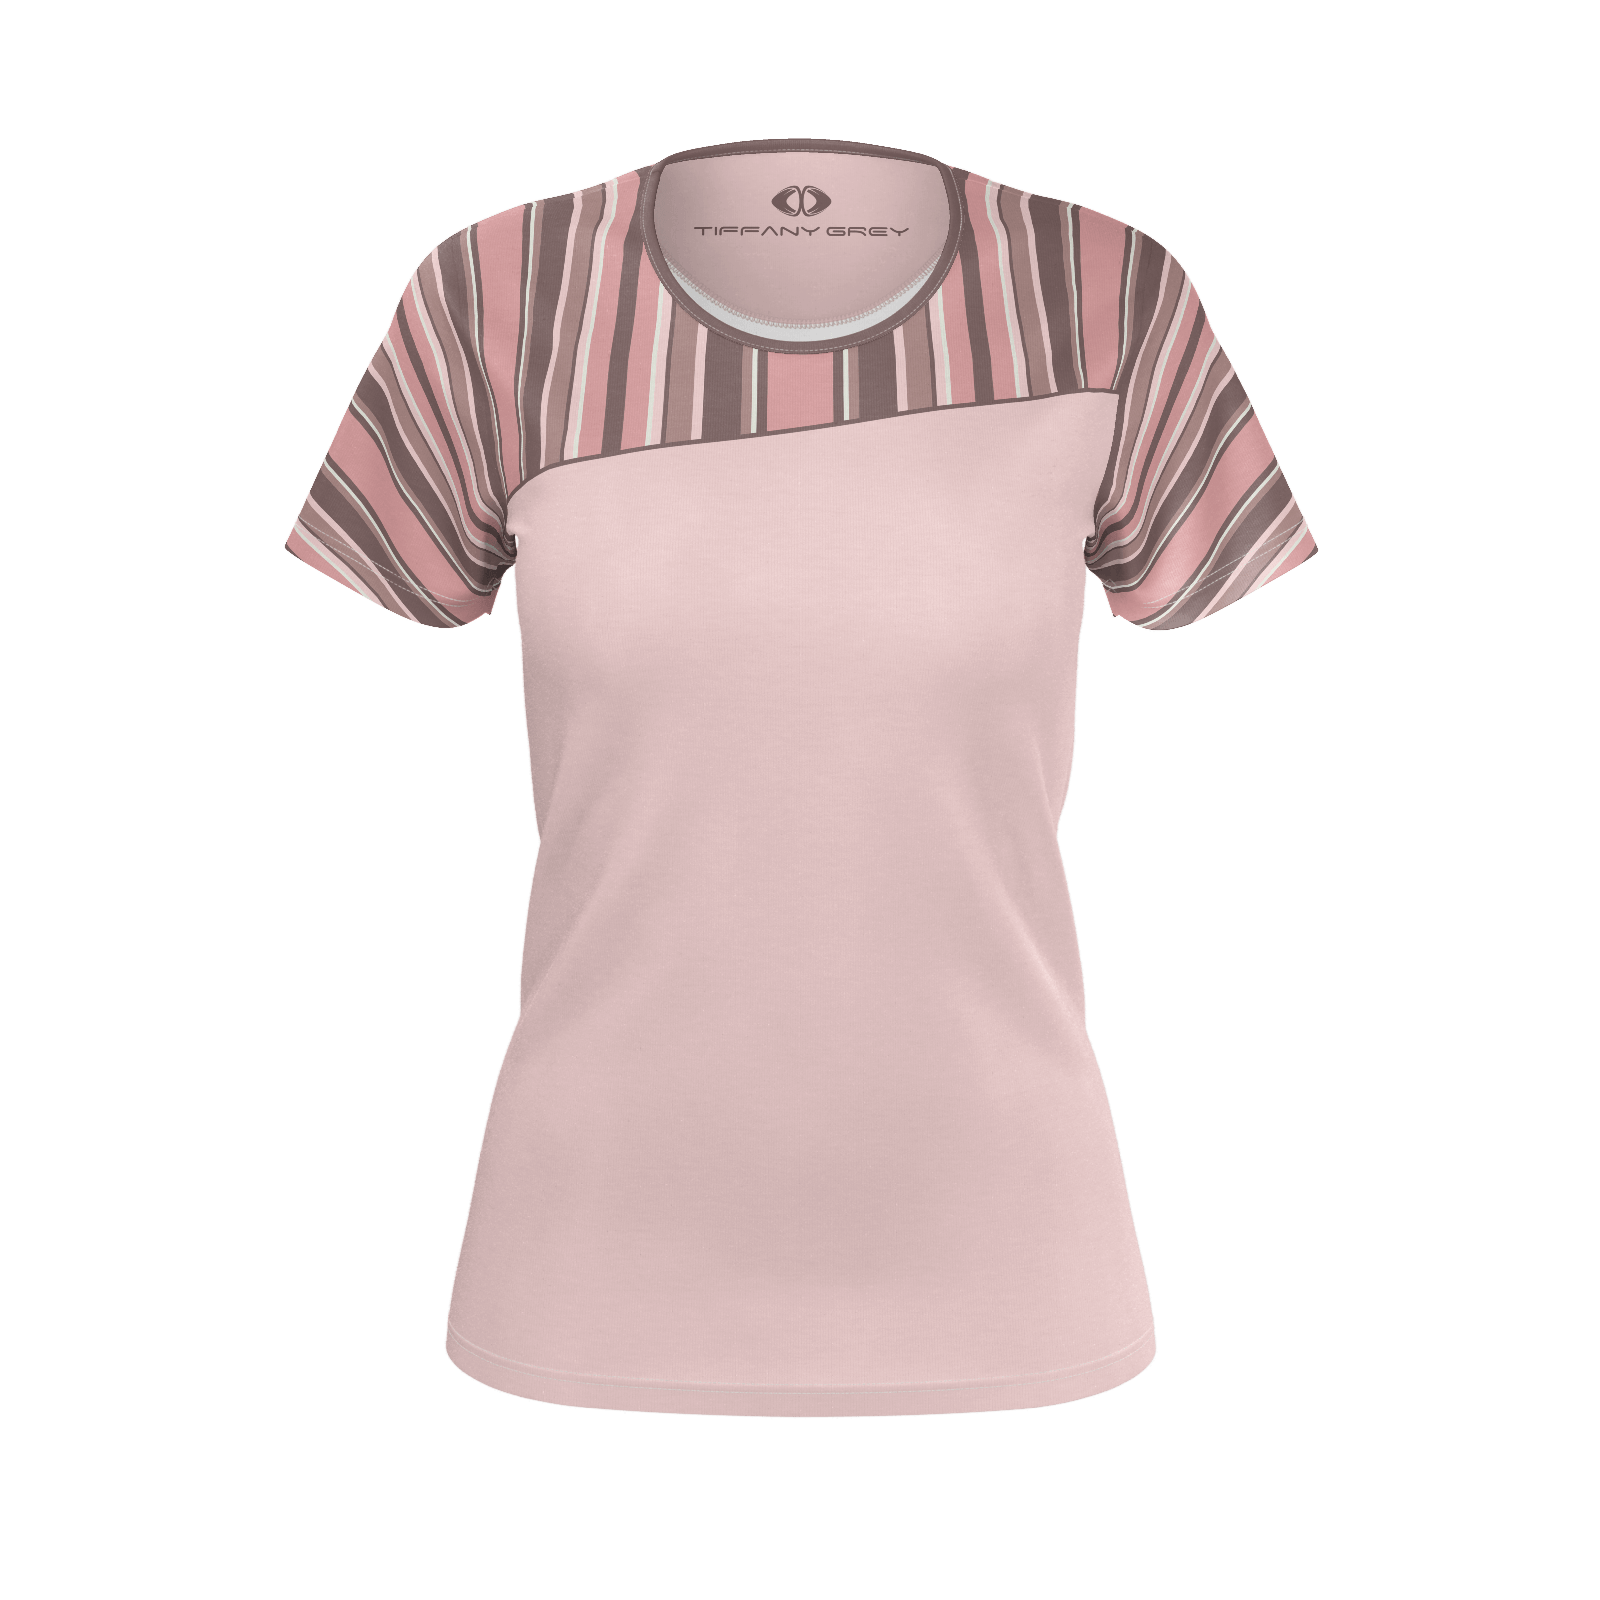 Tiffany Grey - Candyman Pink Brownies T-shirt for Her [Light Variant]